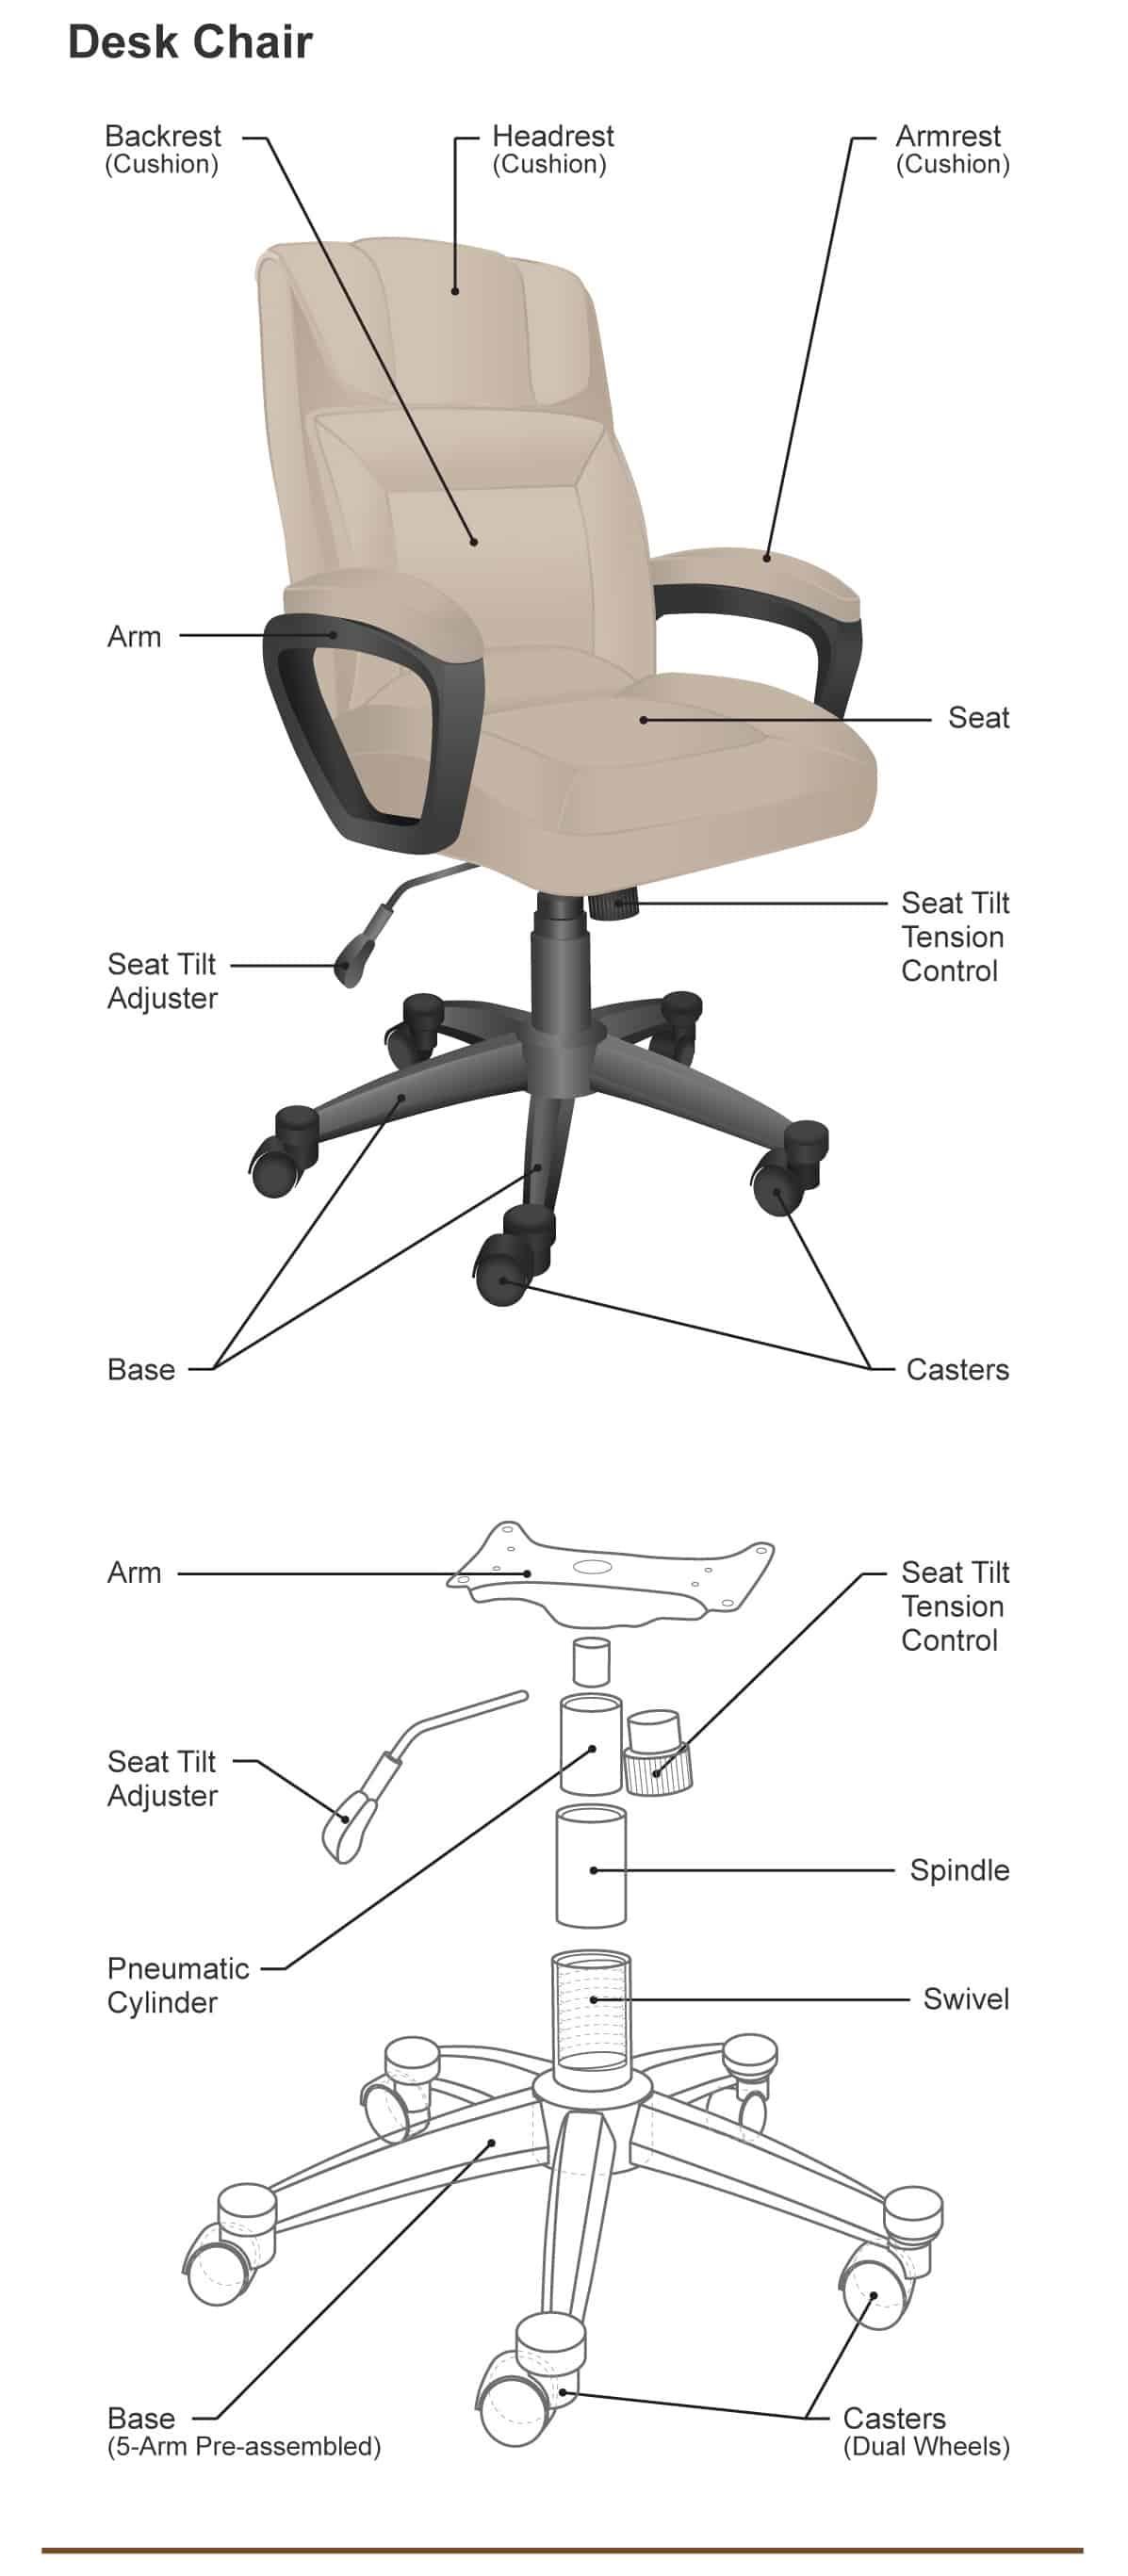 hight resolution of diagram illustrating the different parts of a desk chair